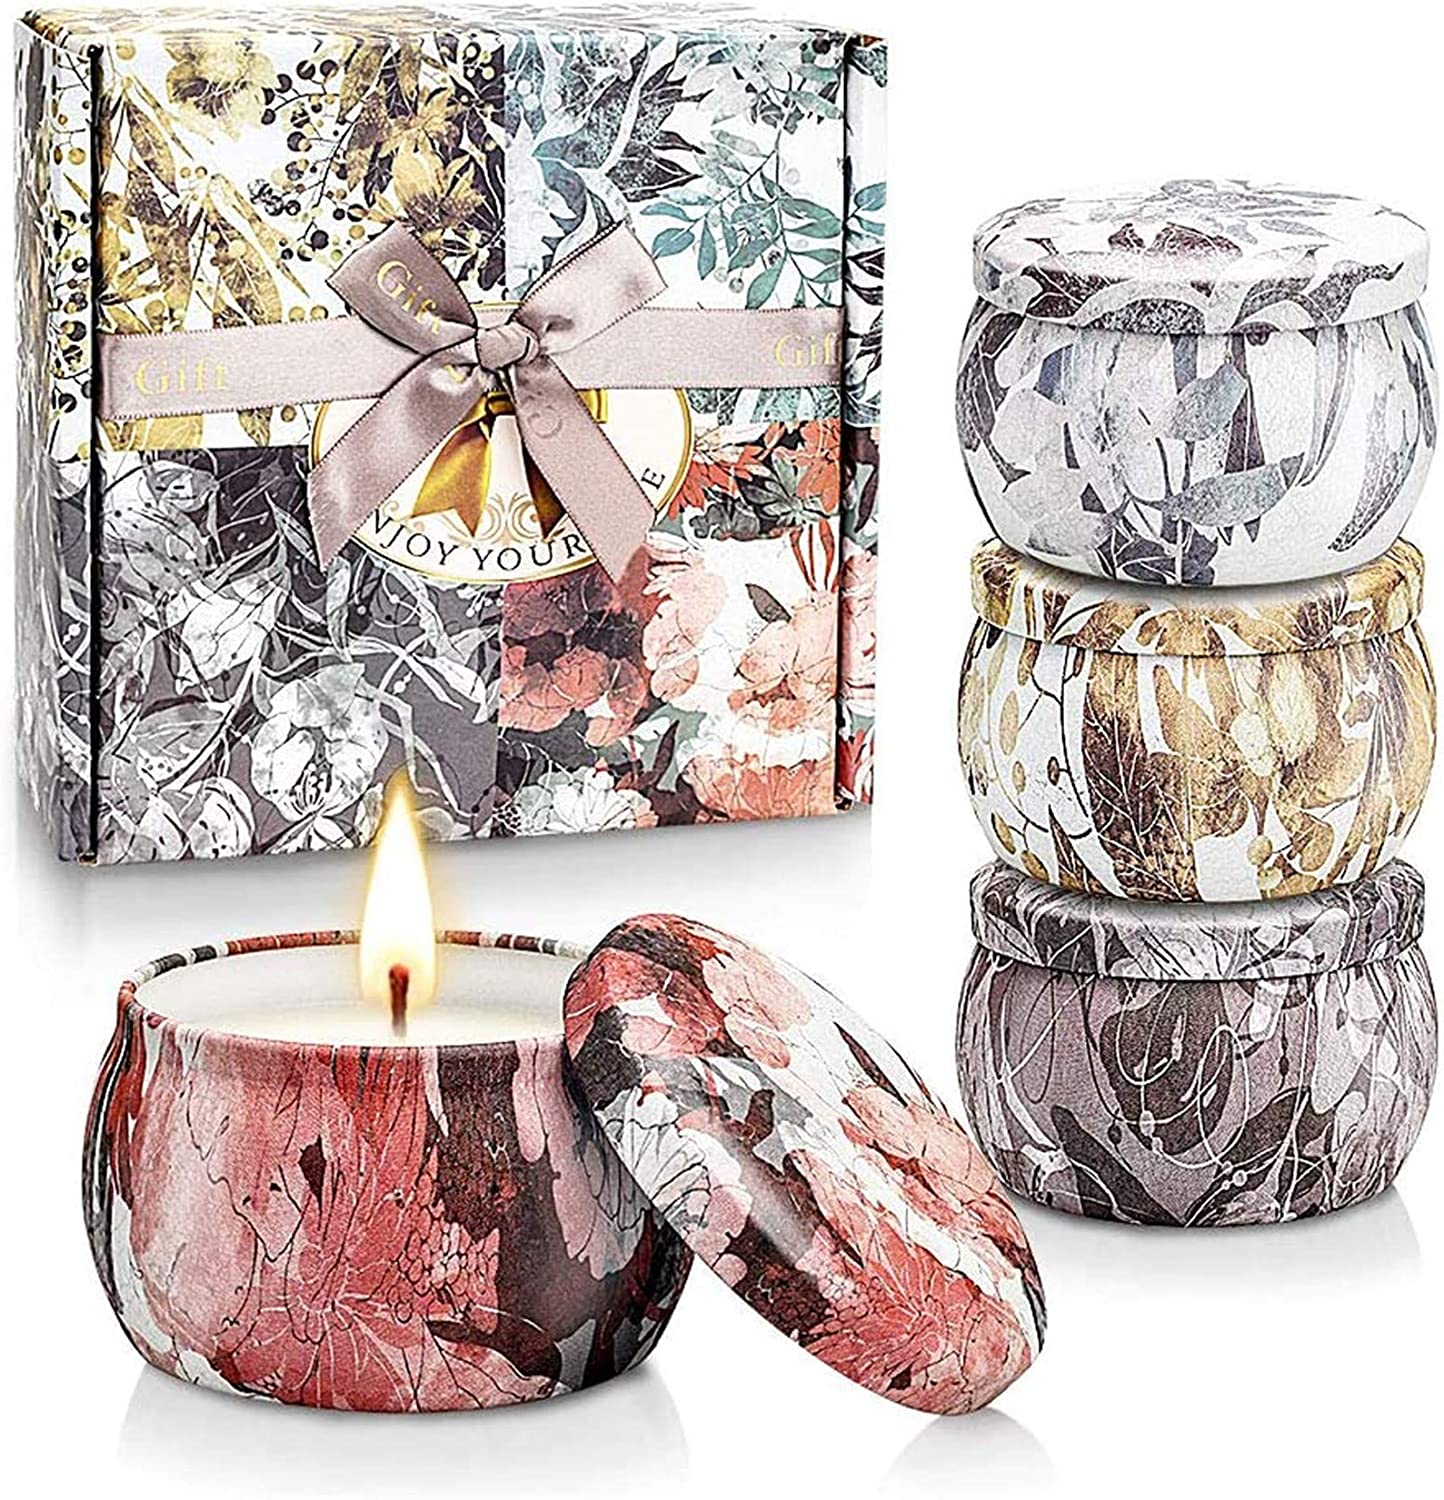 Woman Body Soy Candle Set 2 pieces Handmade Candles  Colorful Candle  Natural Candle